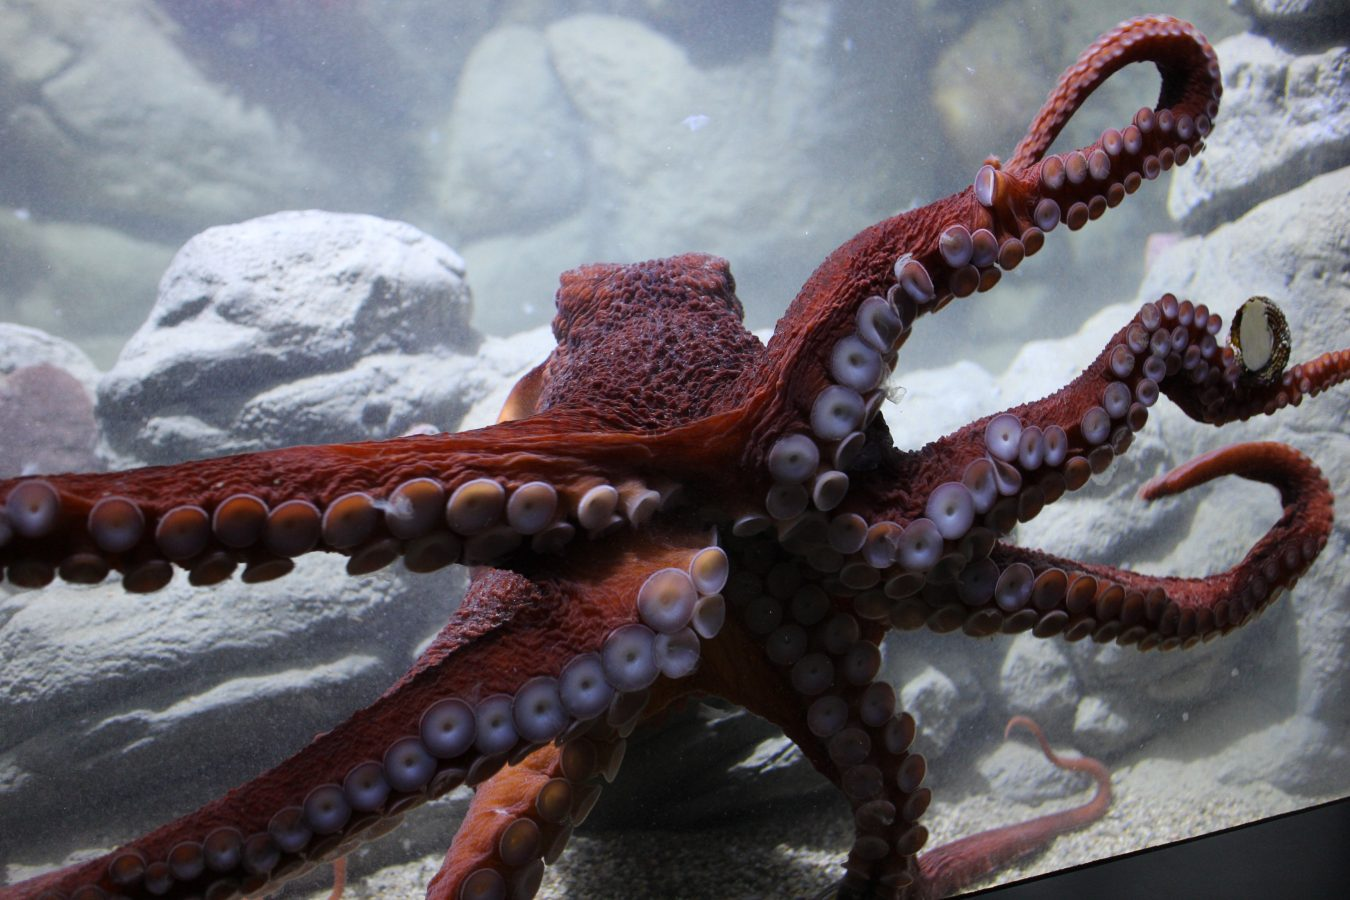 Giant Pacific Octopus moves across the glass of its exhibit